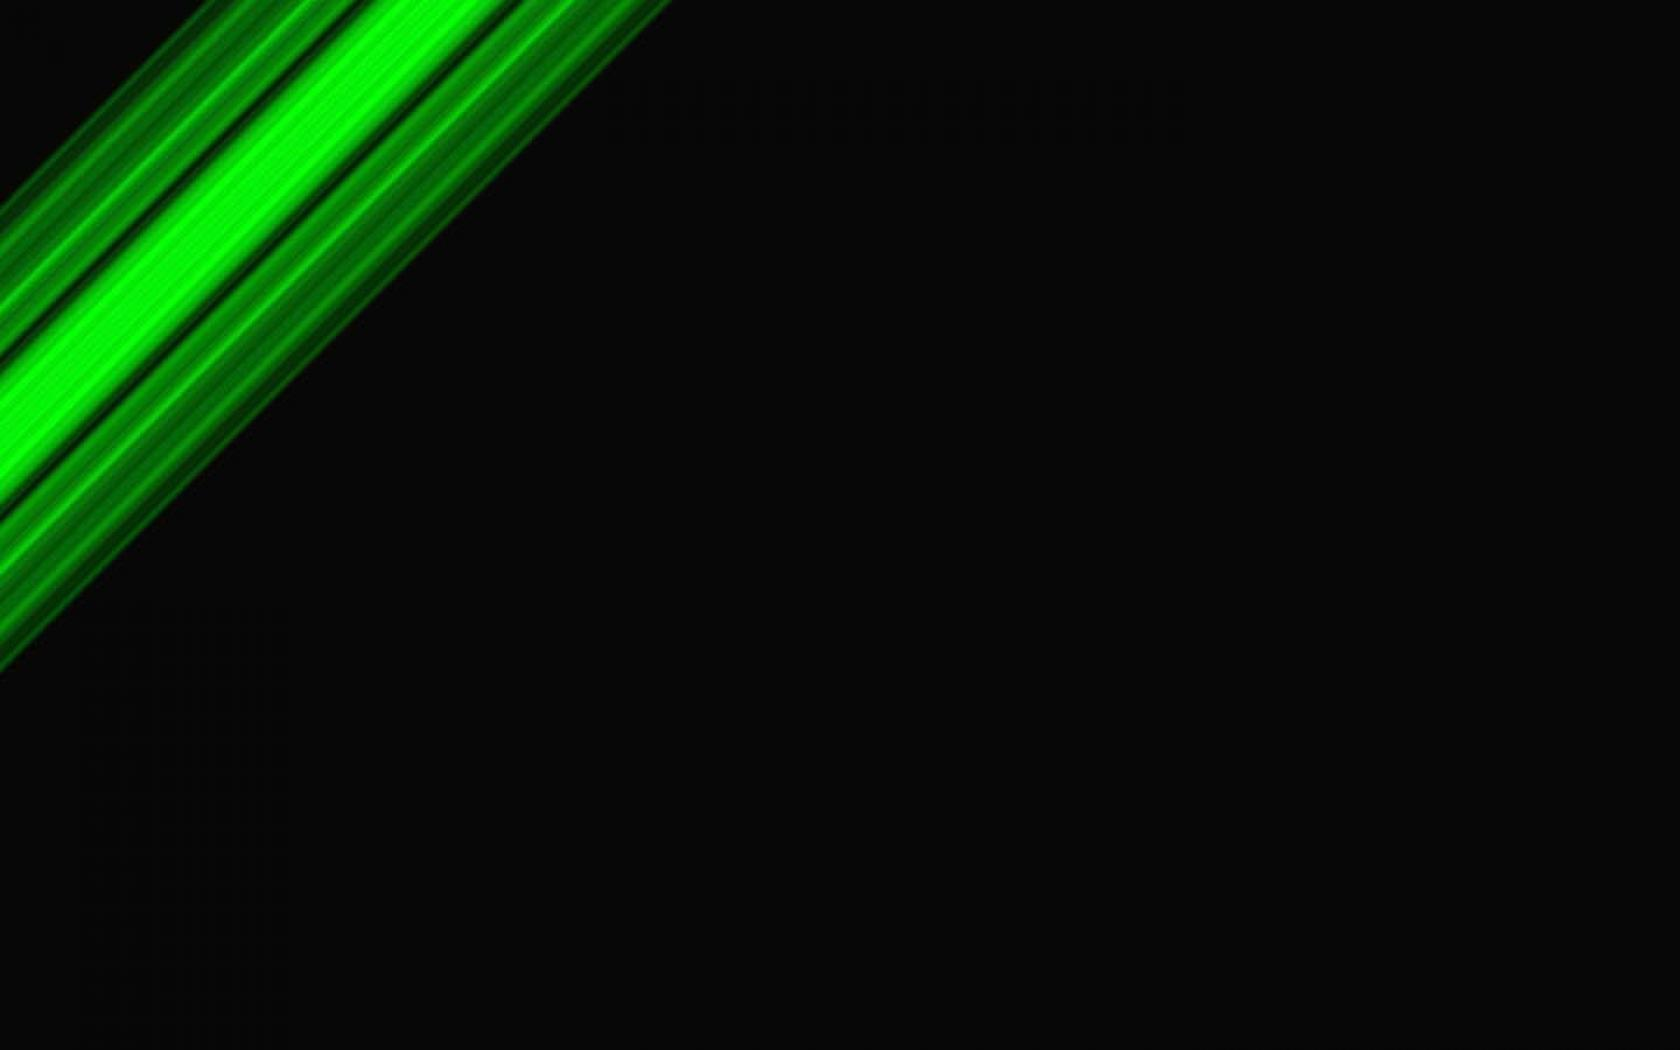 [50+] Green and Black Abstract Wallpaper on WallpaperSafari